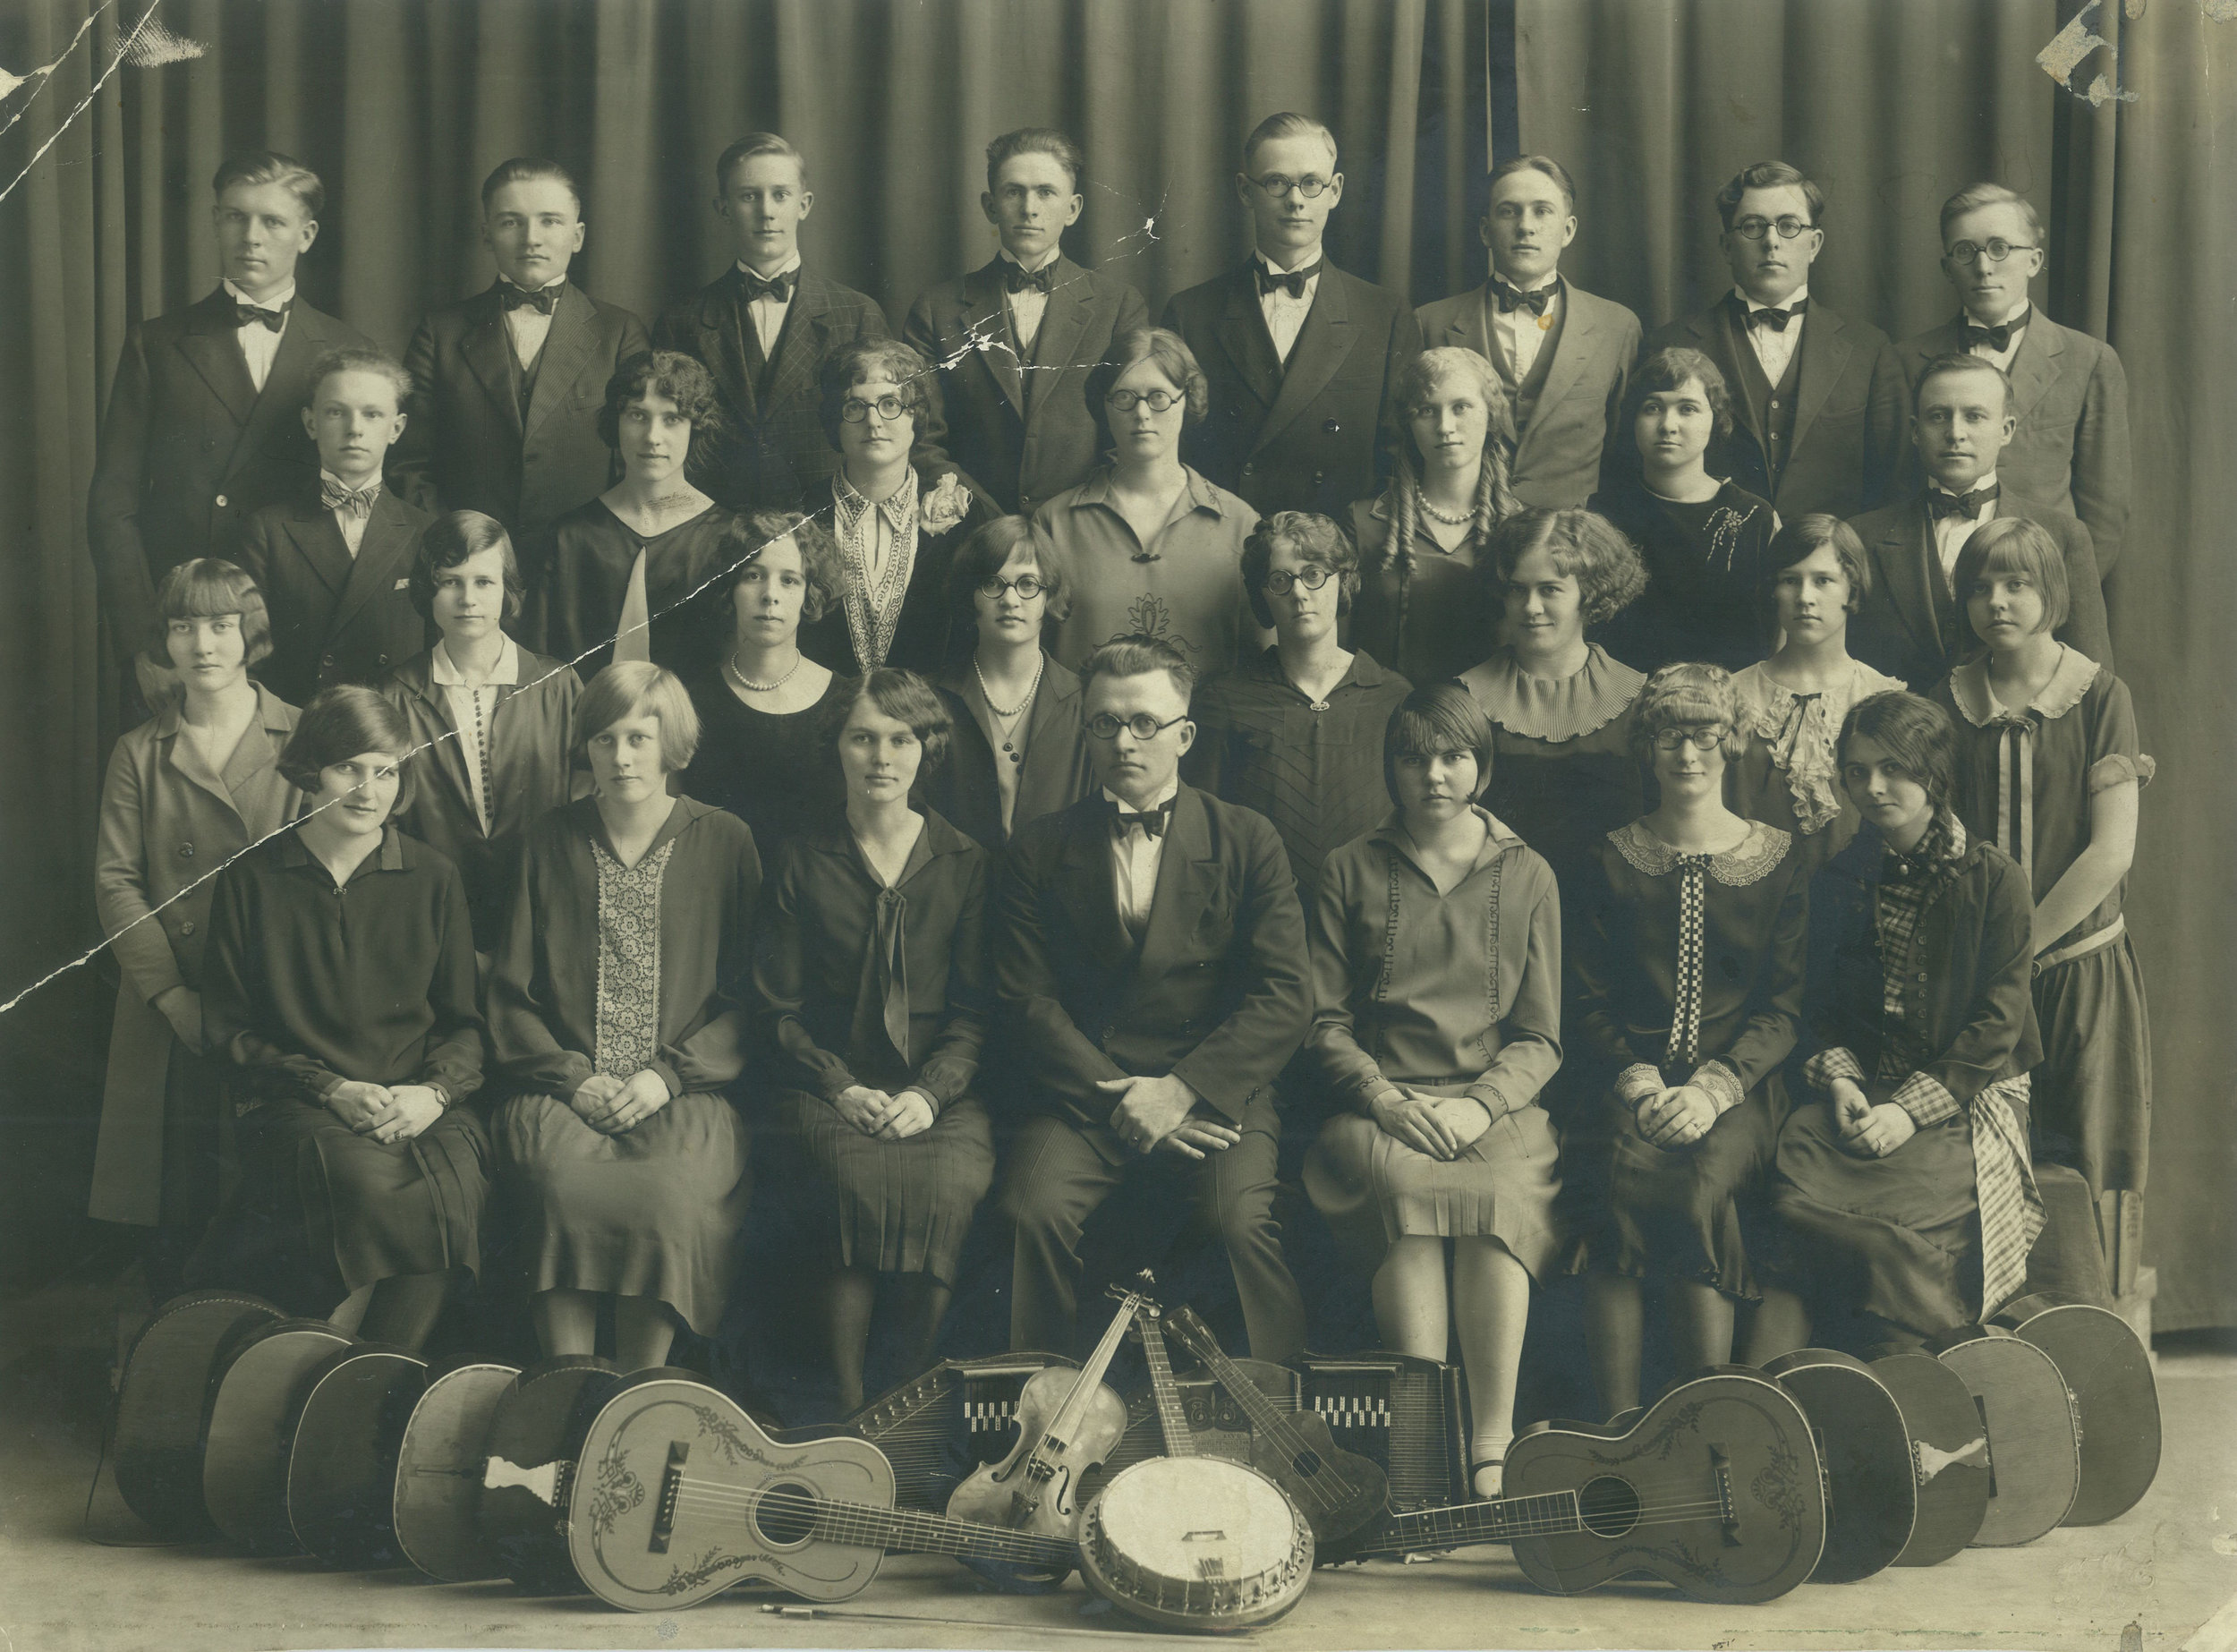 The 1925-26 string band was a highlight for Minnie, standing third from the right in the second row. Her proficiency on the harp opened doors for her to tour with the group throughout Minnesota and North Dakota.